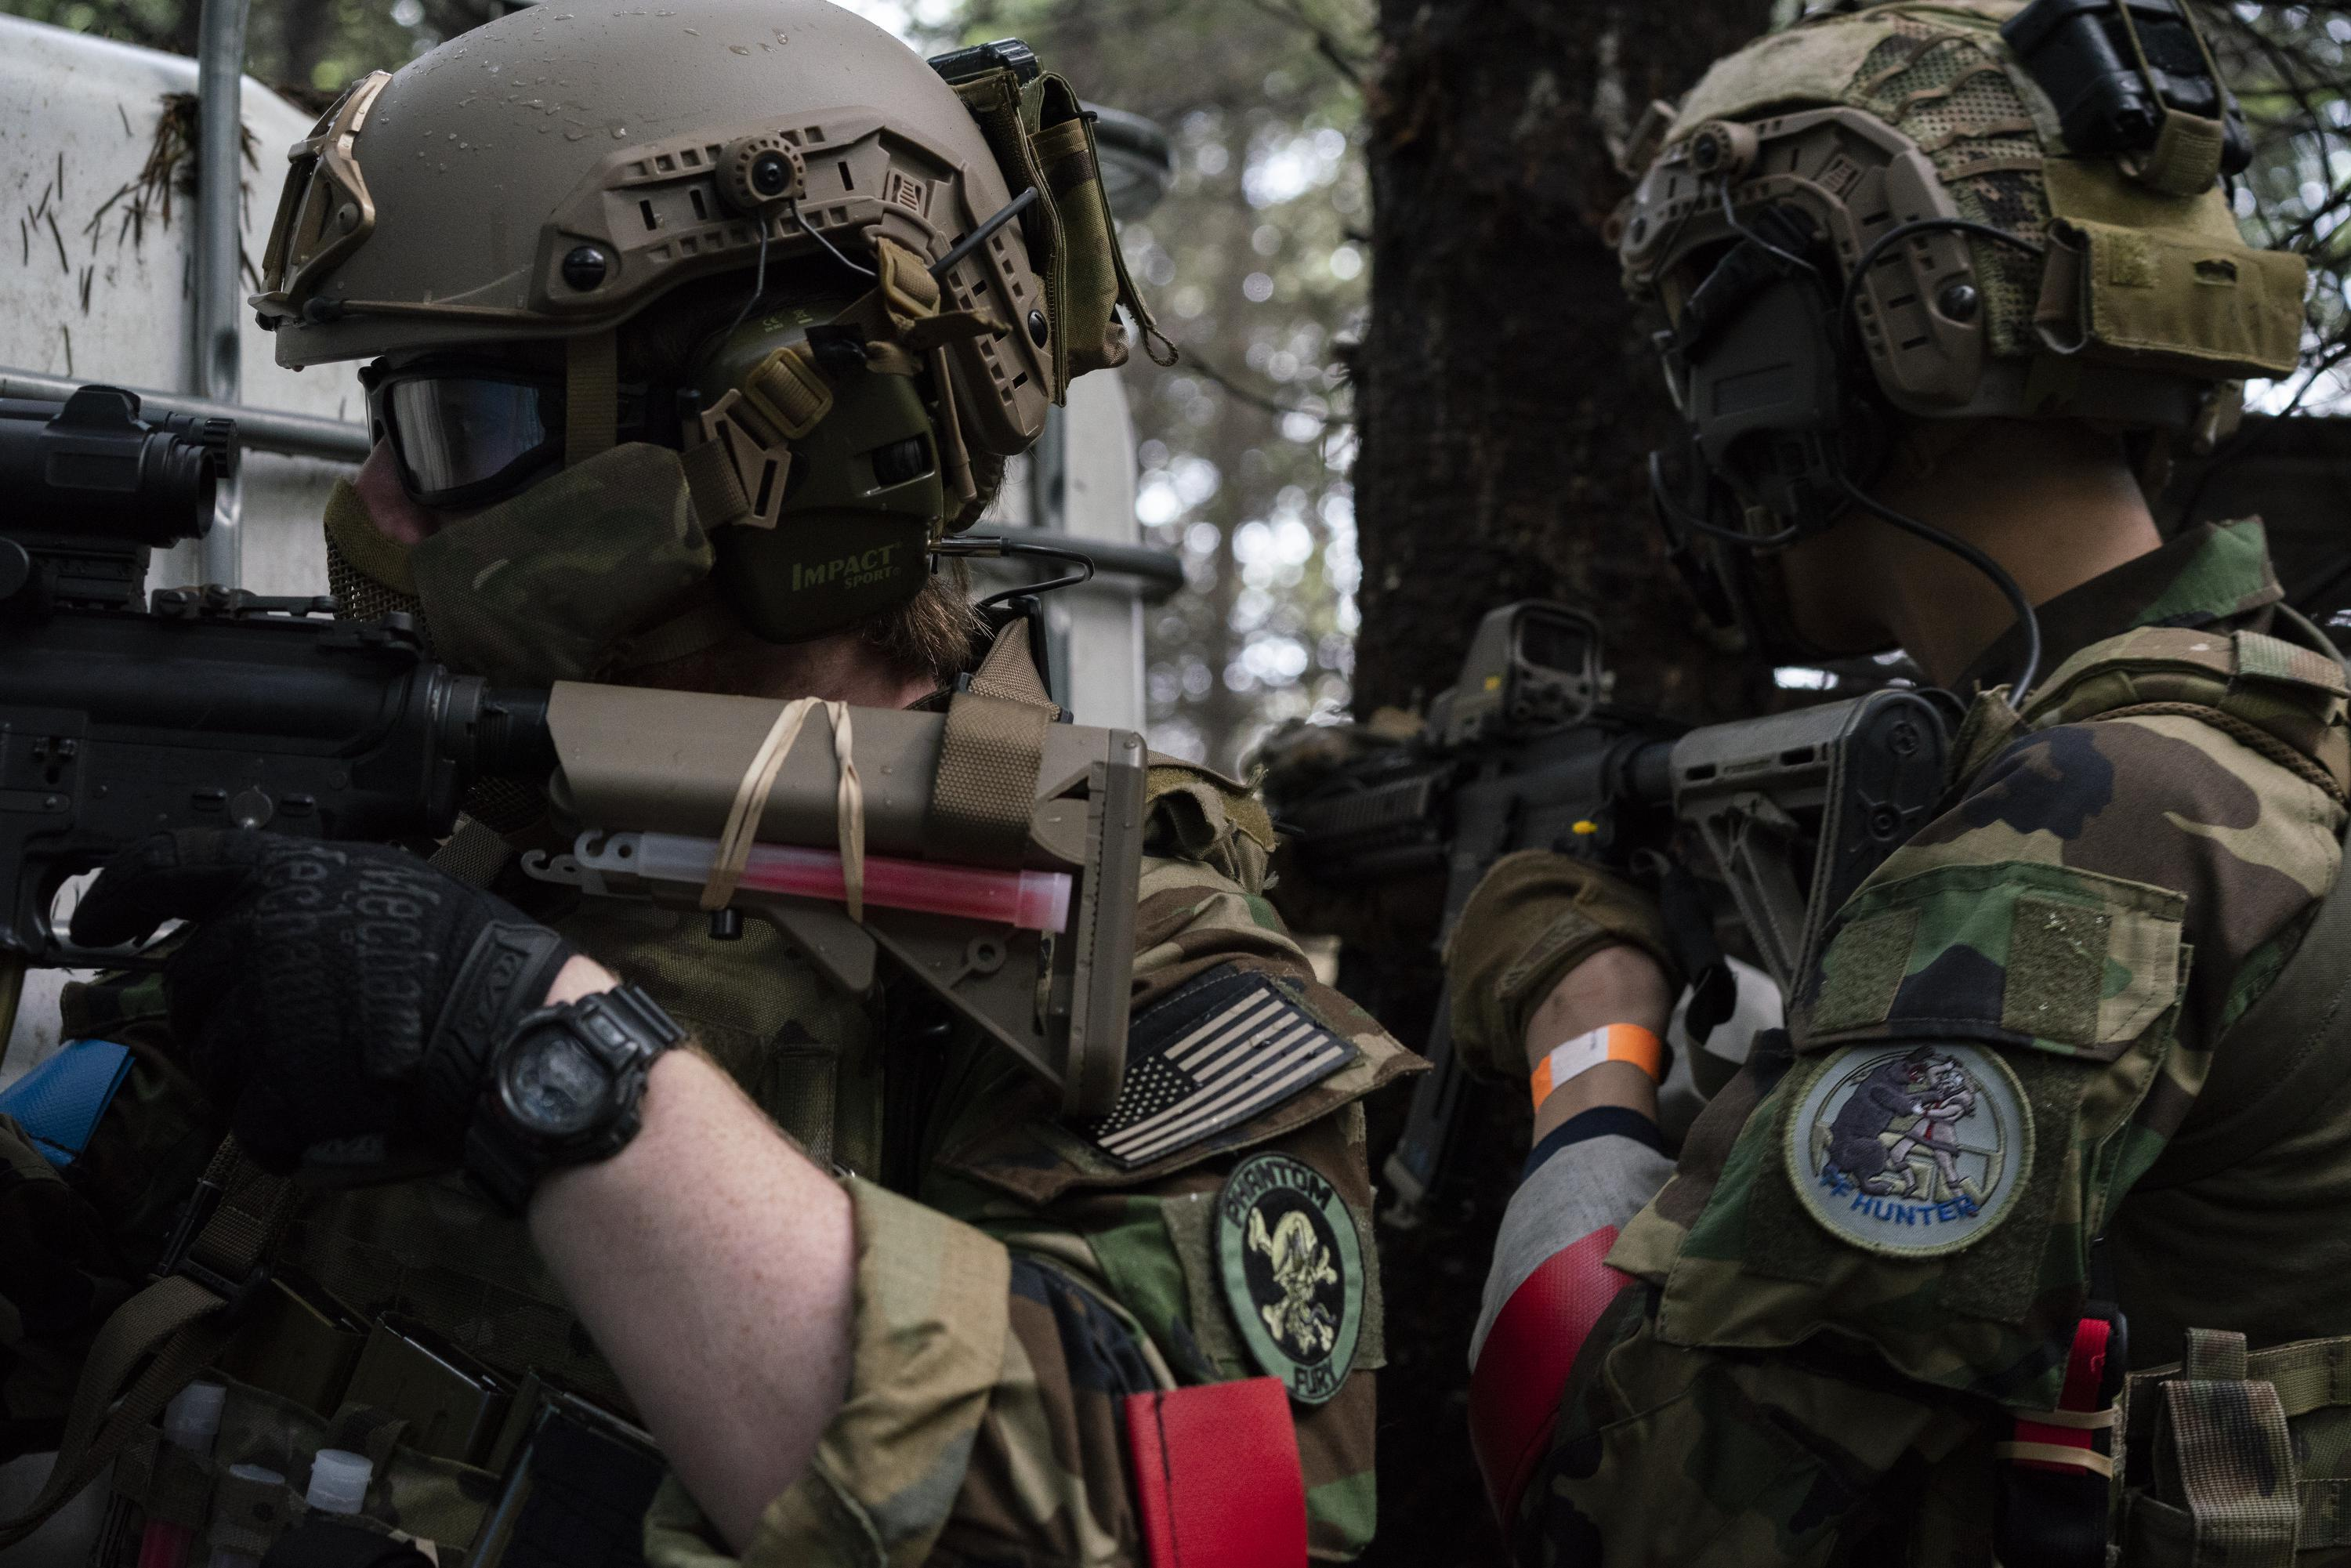 Noah Wenger and Alex Bates look for opponents during an AirSoft game at Action Acres AirSoft on March 23, 2019, in Canby, Ore.